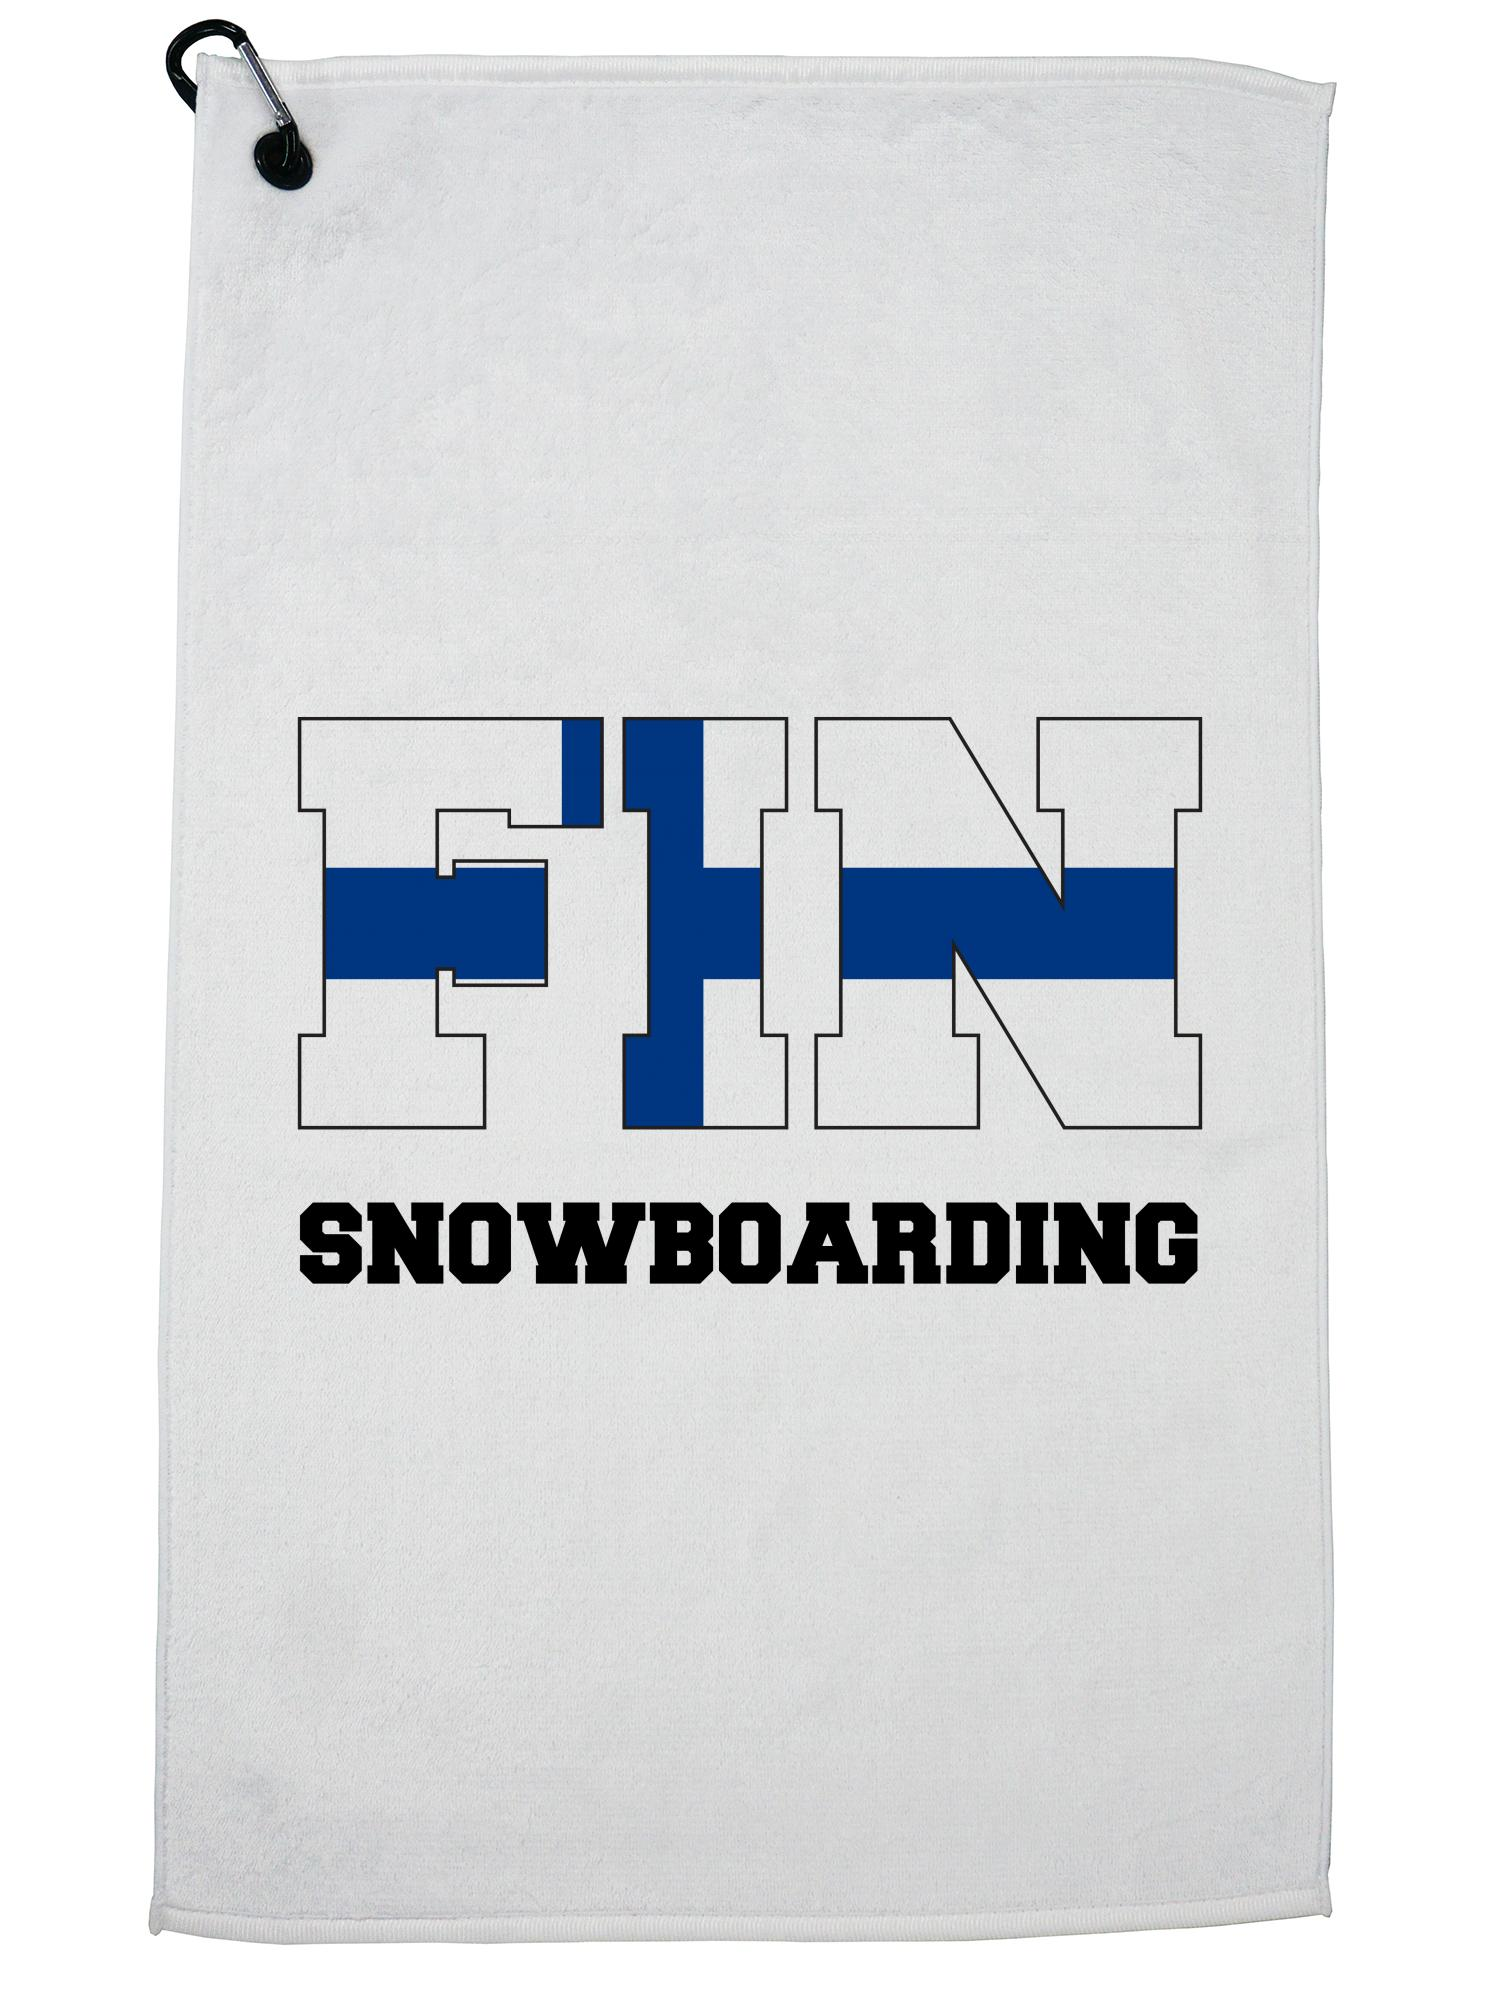 Finland Olympic Snowboarding Flag Silhouette Golf Towel with Carabiner Clip by Hollywood Thread